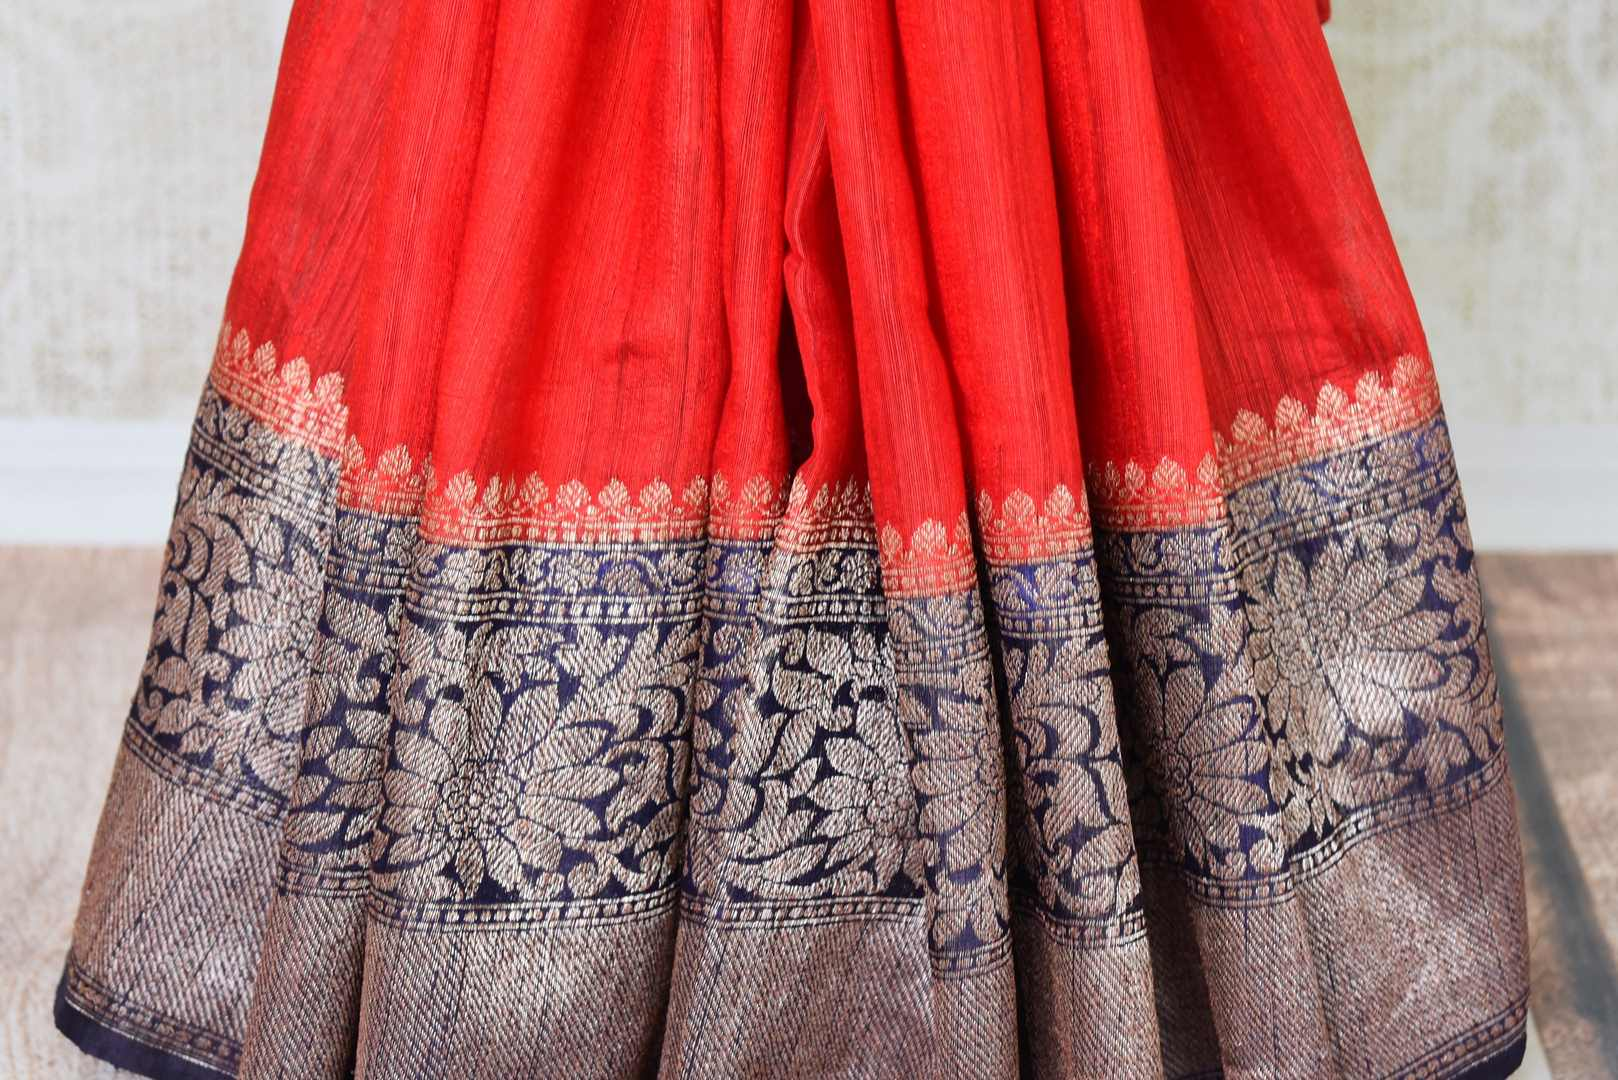 Enchanting hues of red matka banarsi silk are here to melt your heart this wedding season. Drape this sari with a gold and black intricately woven zari border and compliment it with a similar designer blouse. Shop handloom sarees, silk sari, linen saree online or visit Pure Elegance store, USA.-pleats